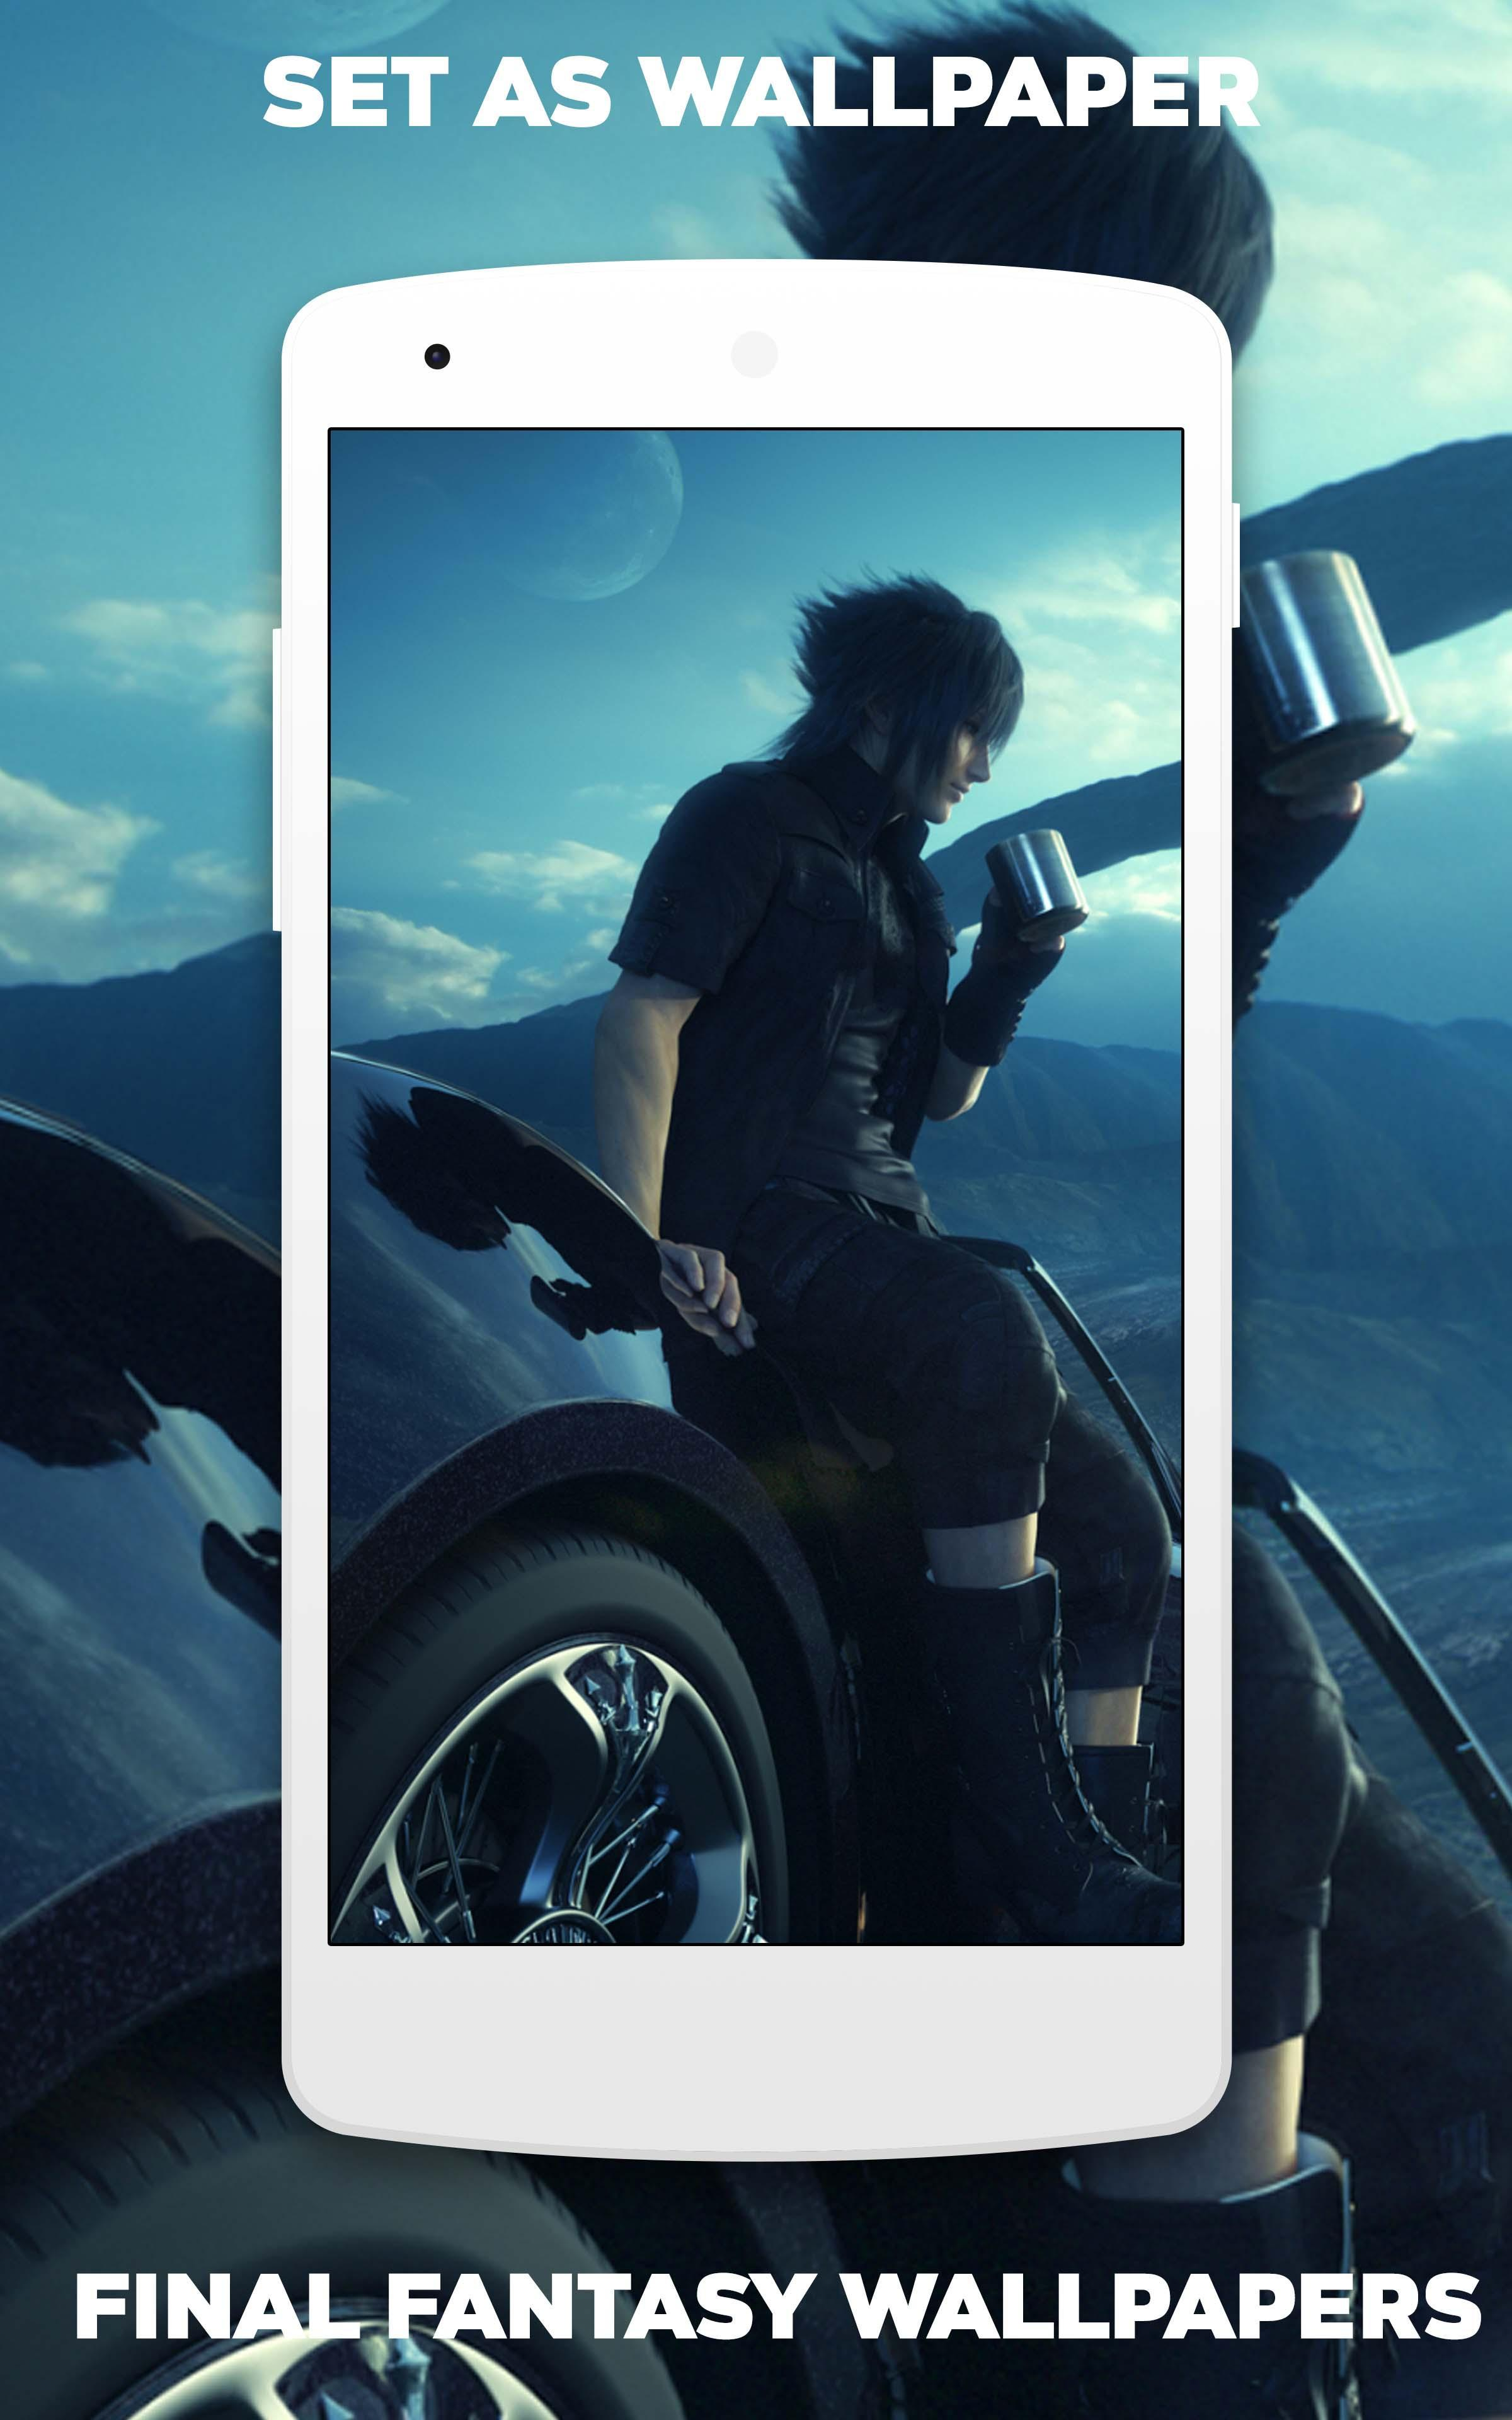 New Final Fantasy Xv Wallpaper For Android Apk Download